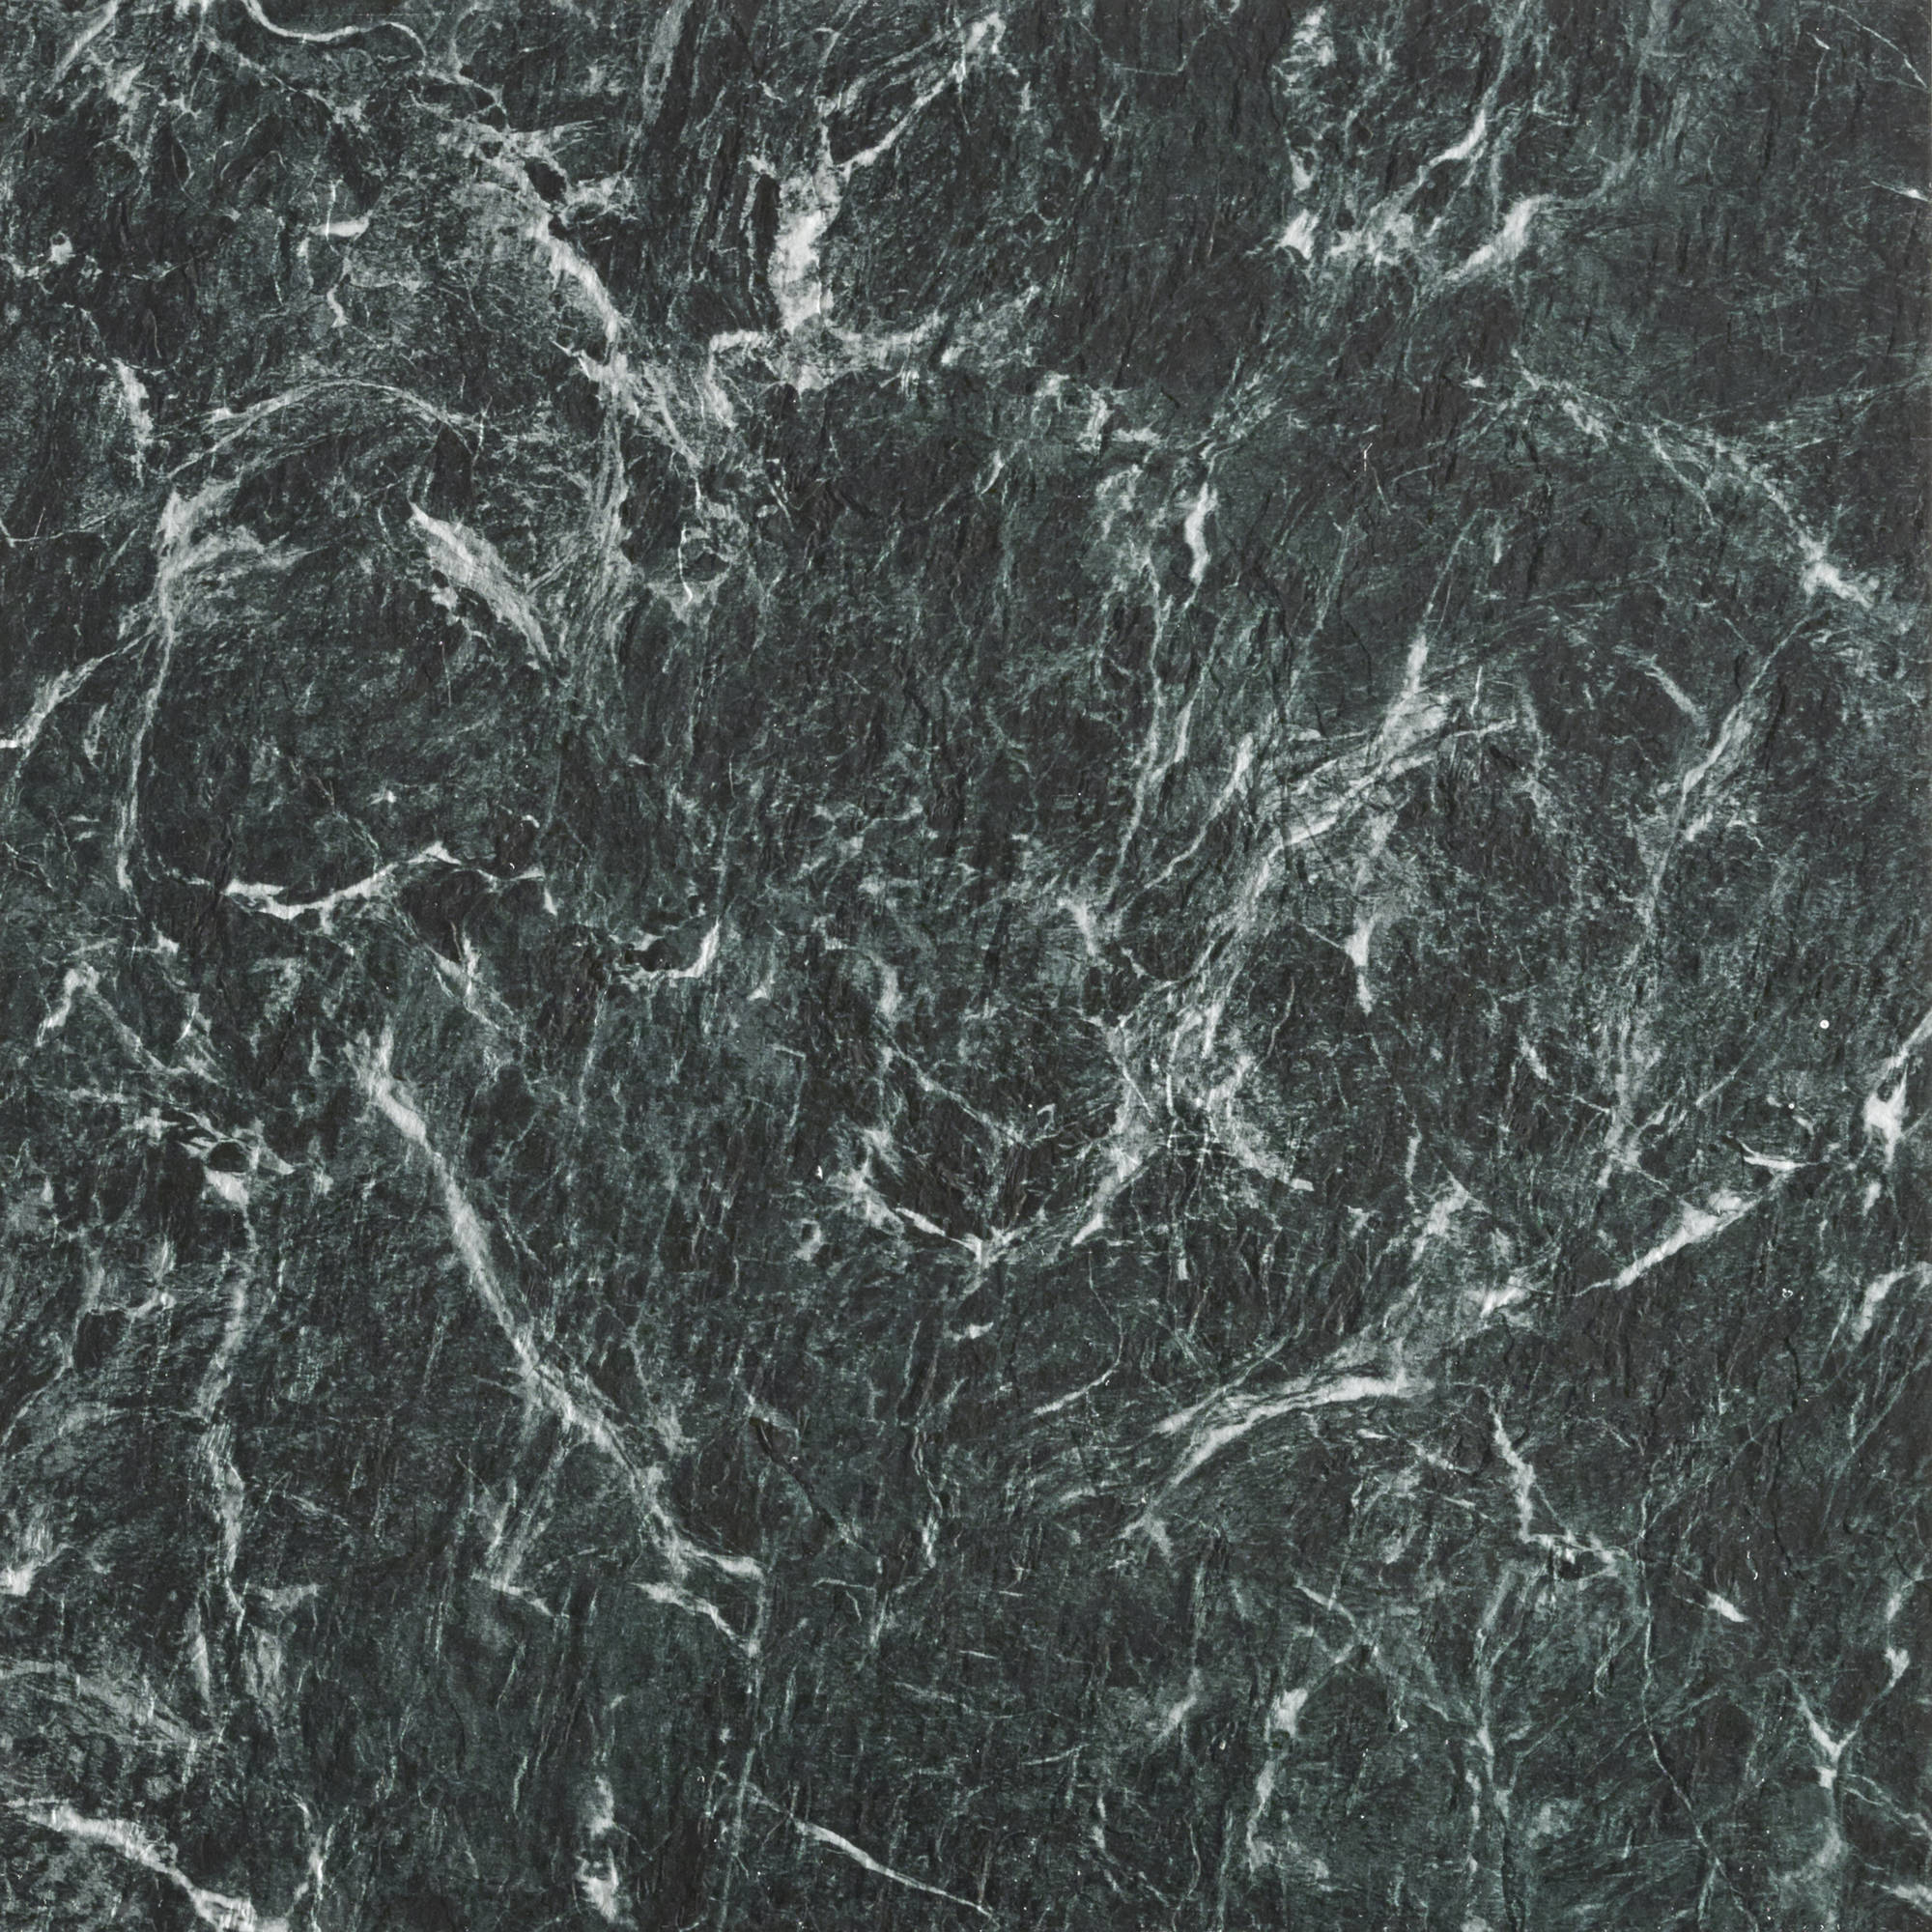 Majestic Verde Green Marble 18x18 2.0mm Vinyl Floor Tile - 10 Tiles/22.5 Sq.Ft.